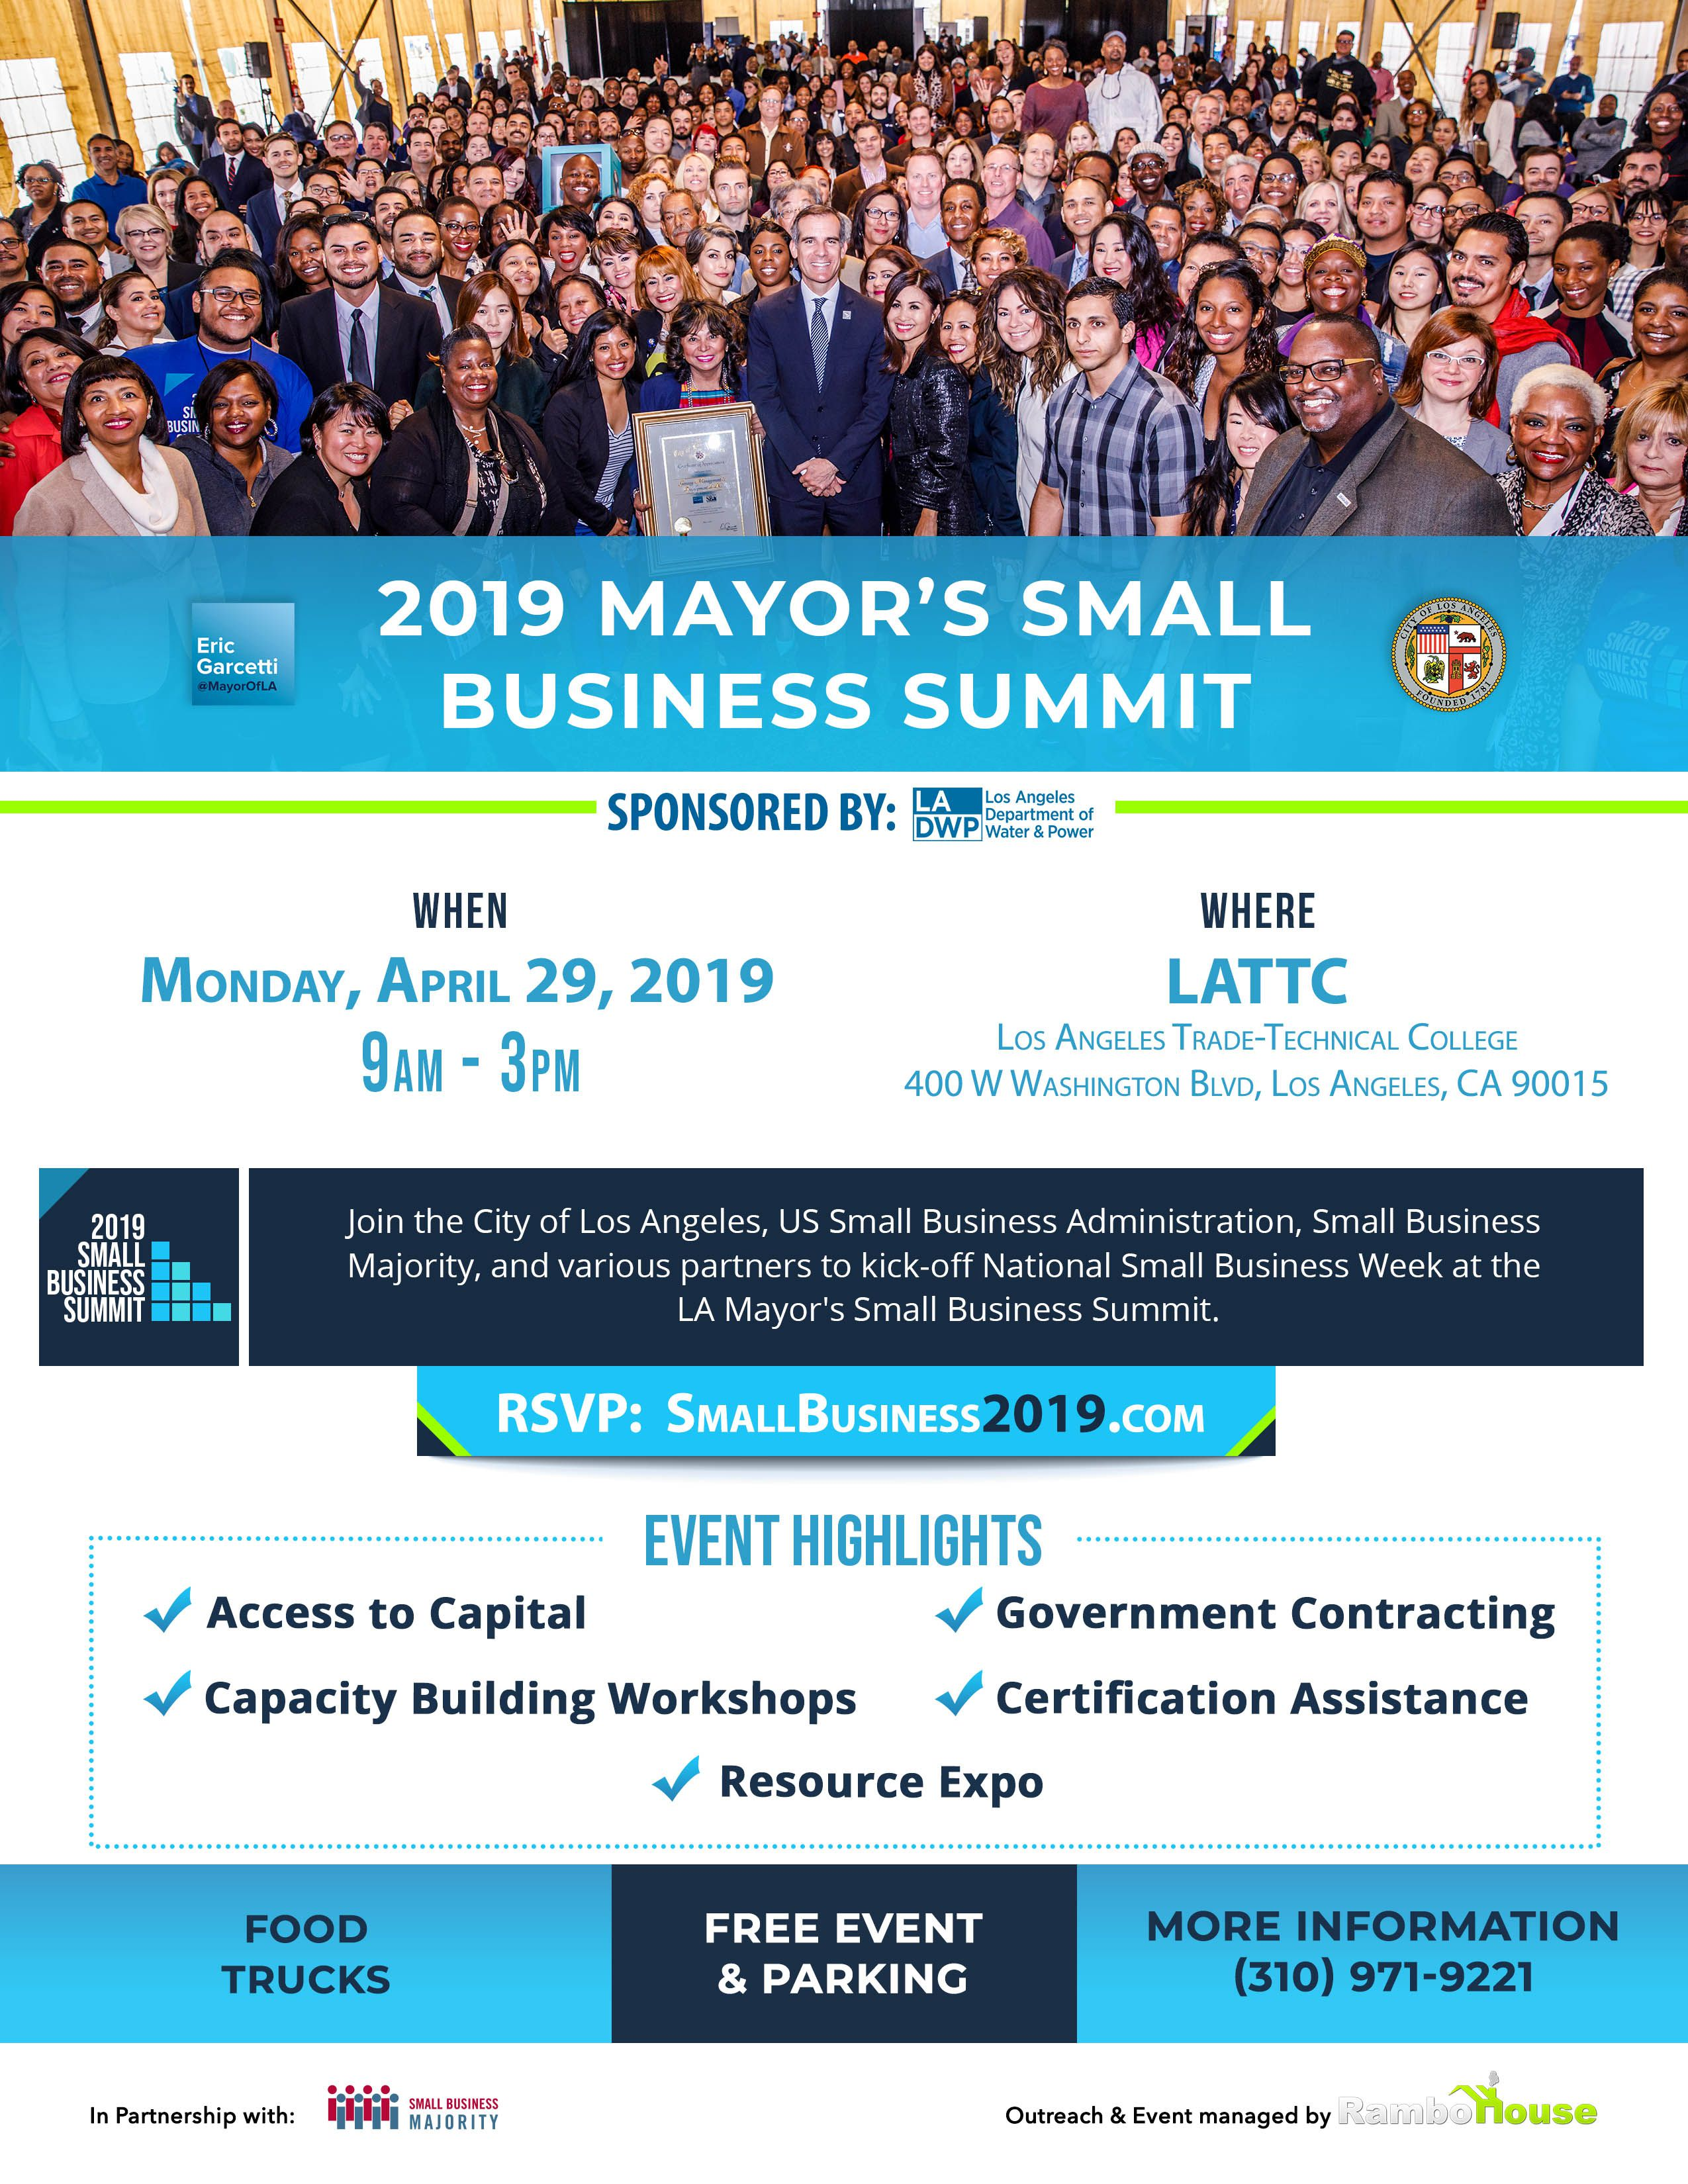 Mayor's Small Business Summit